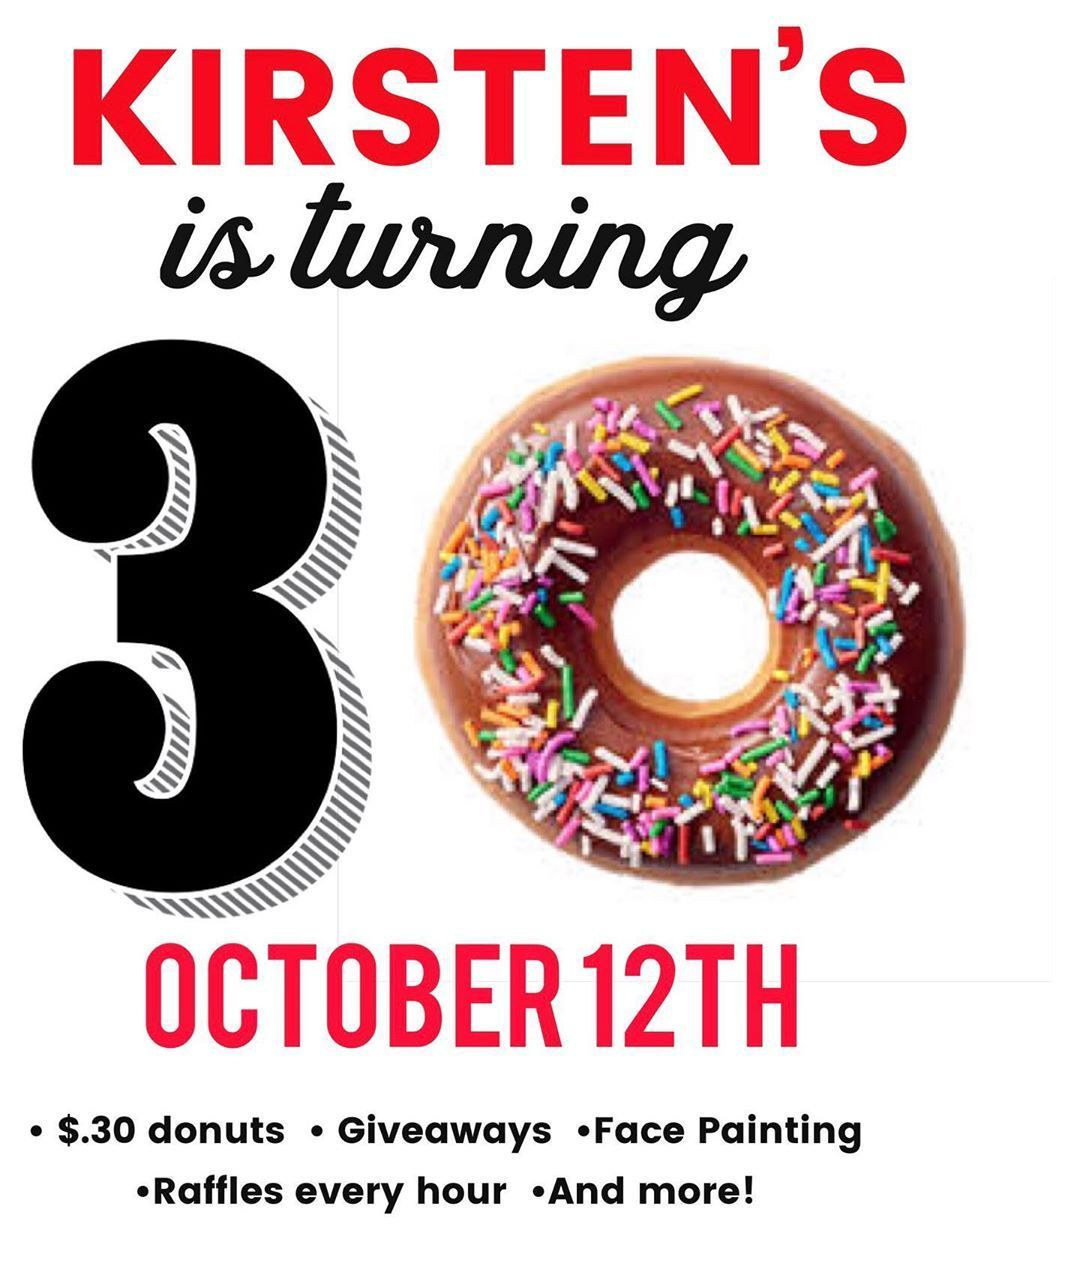 CELEBRATE WITH US!  Don't forget to mark your calendars for this Saturday, October 12th! We are having an anniversary party to celebrate 30 years!  We will have: •Donut eating contest at NOON! •Giveaways (cake, Kringle, and more) •Raffles every hour •Specials ($.30 donuts, cookies, and other treats) • Face painting • An